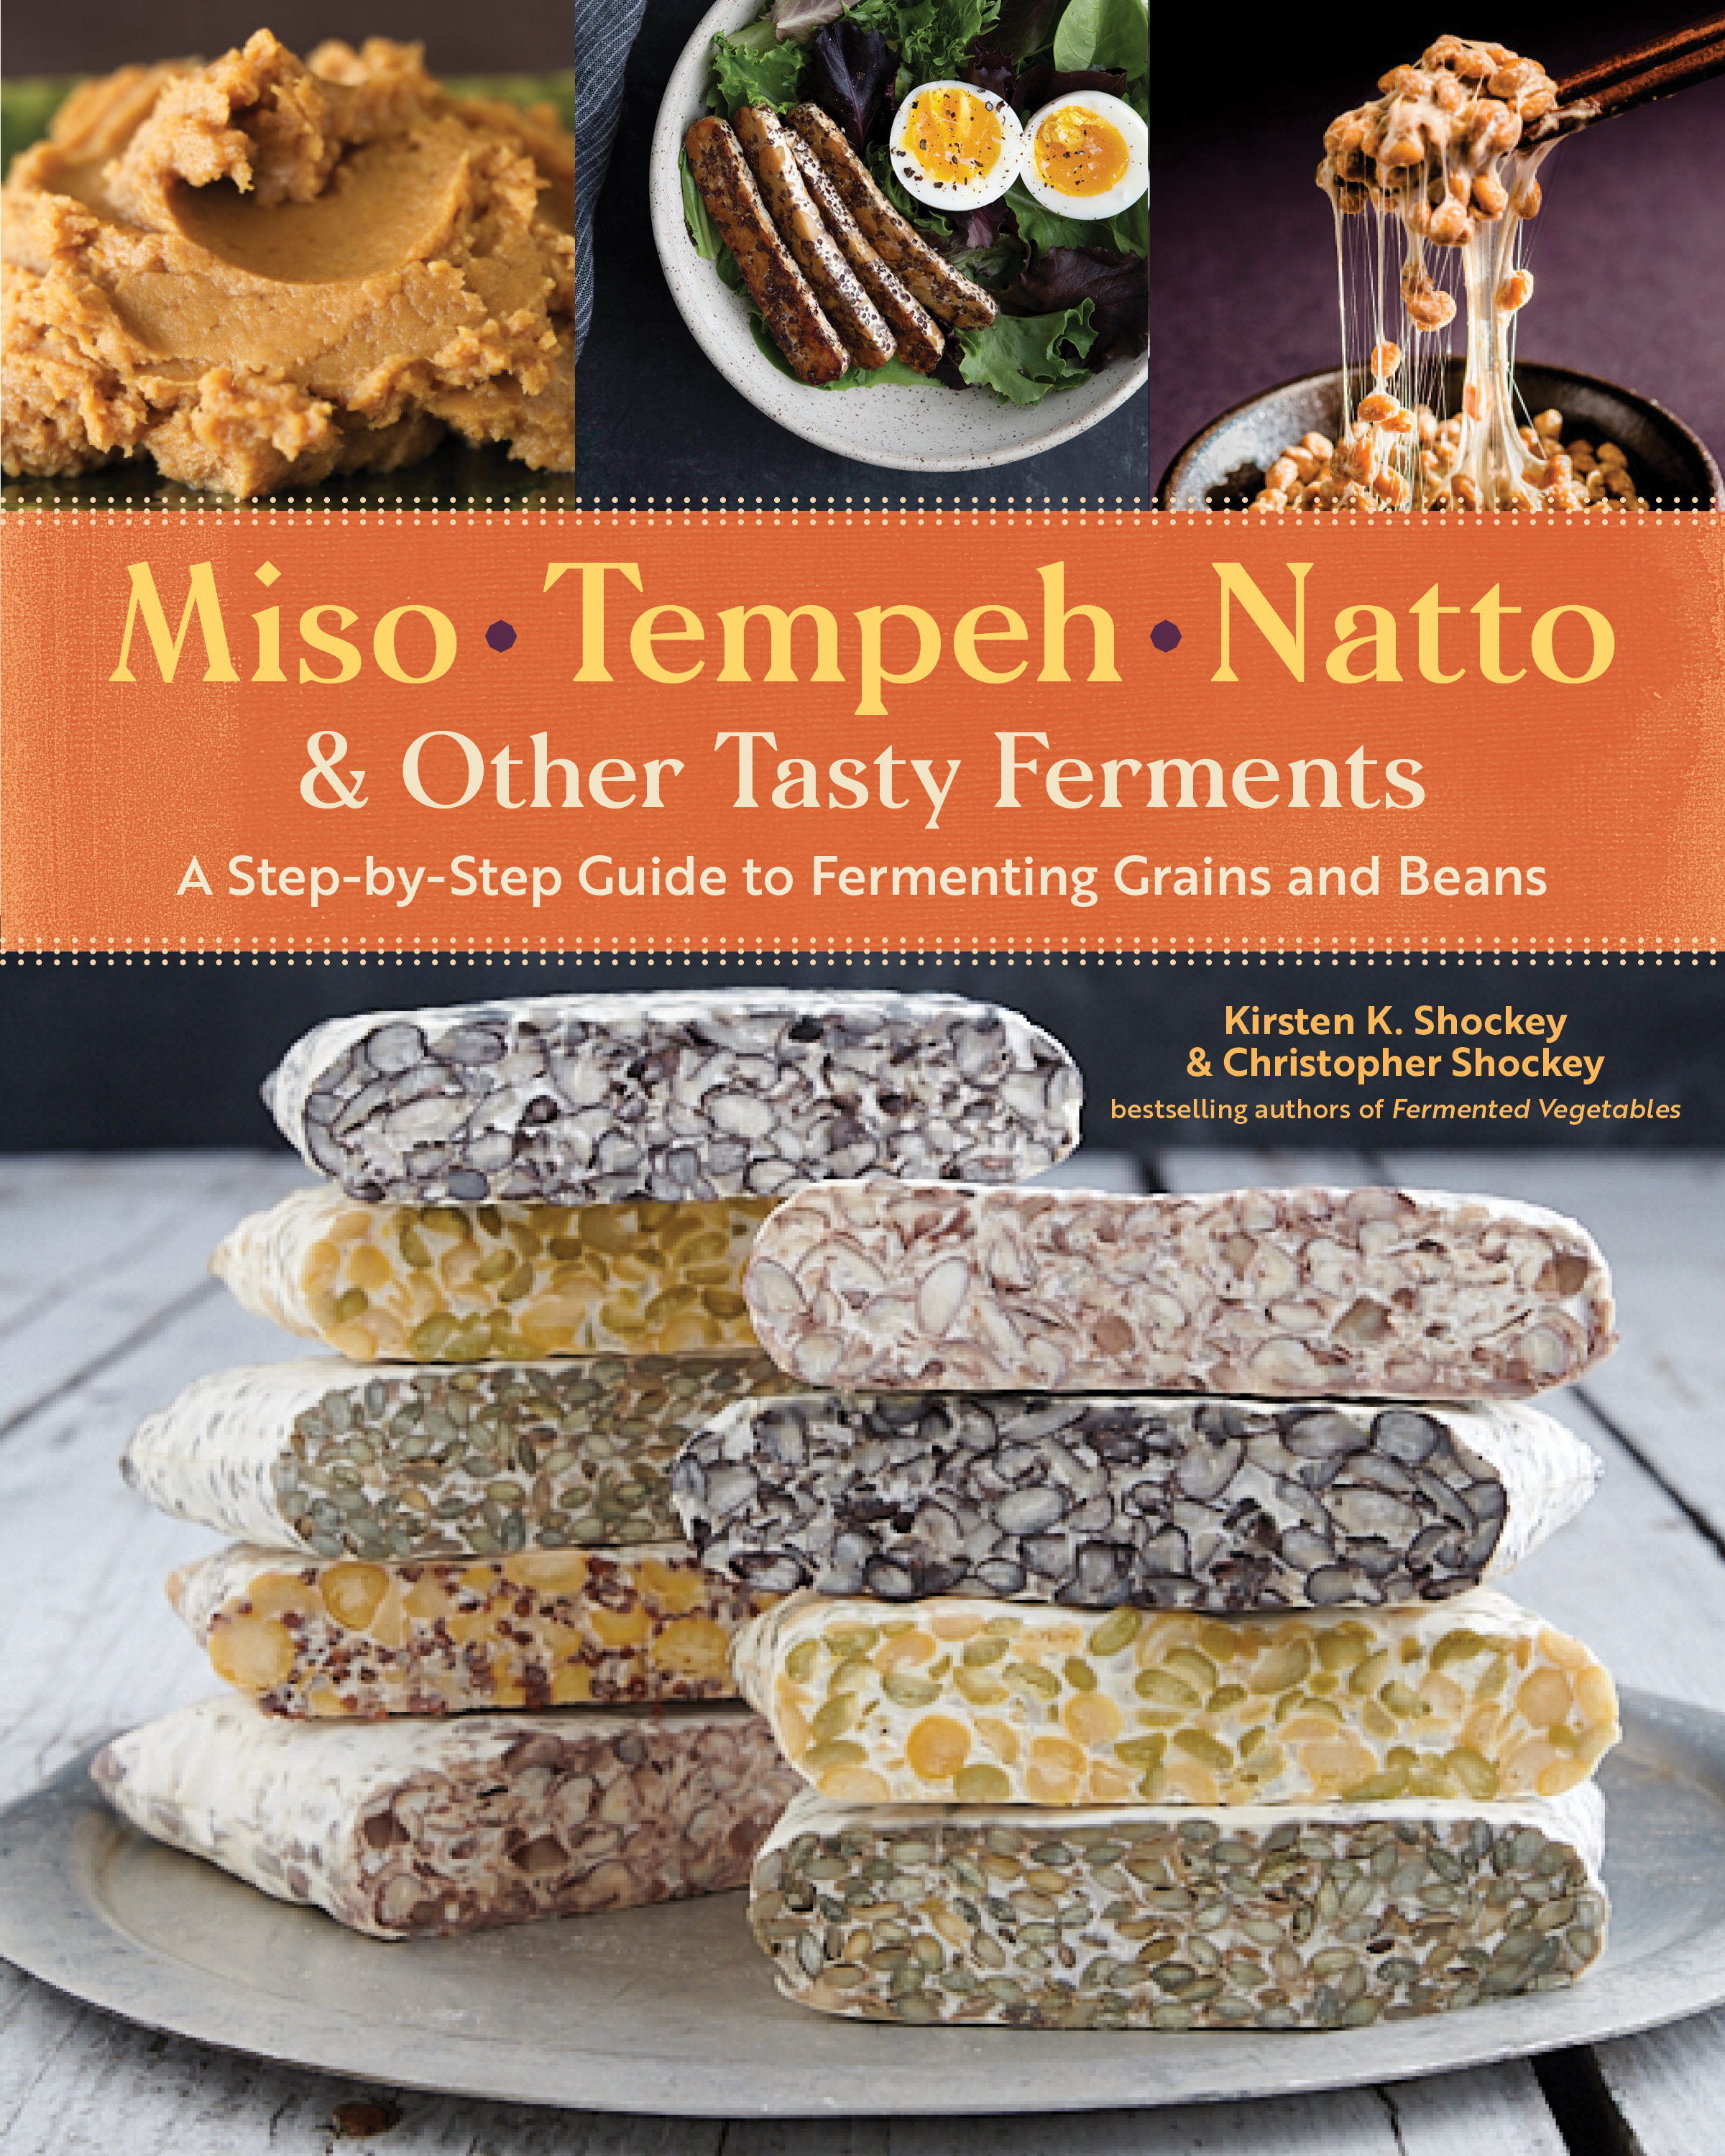 Miso, Tempeh, Natto & Other Tasty Ferments A Step-by-Step Guide to Fermenting Grains and Beans - Kirsten K. Shockey